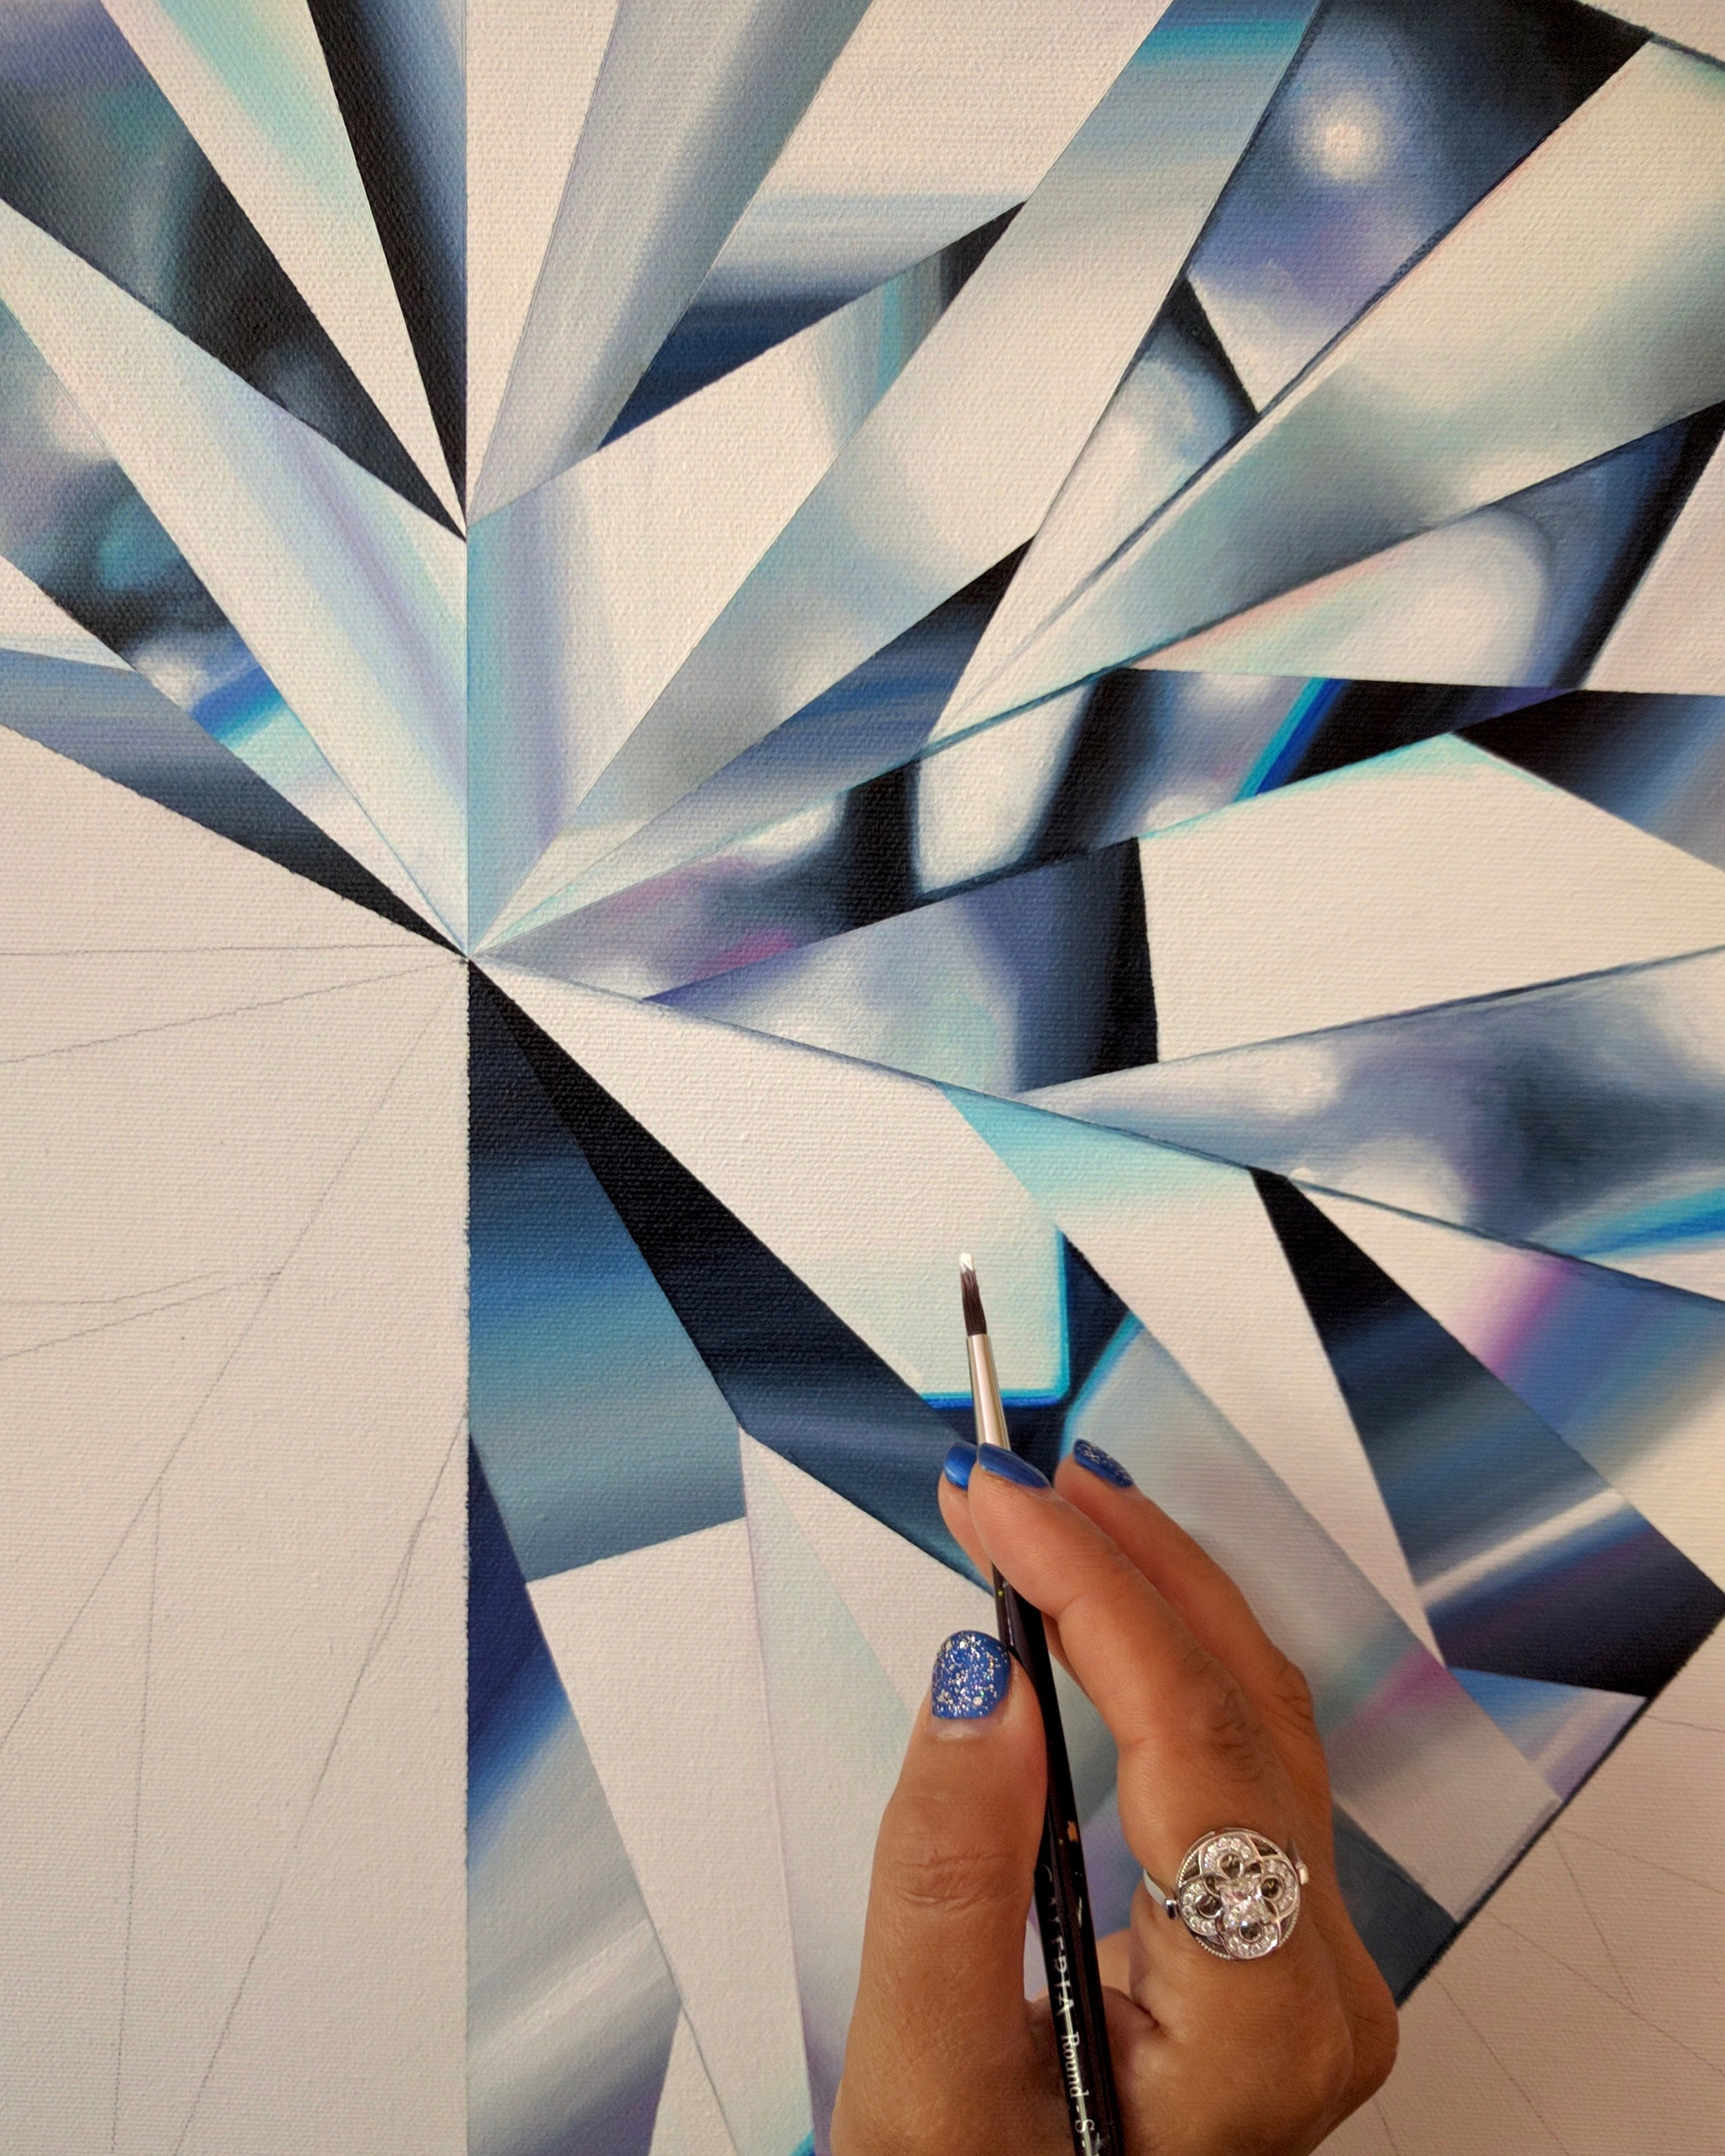 Dazzle & shine B R I G H T, because you can! Detail of 'Pure Heart', my white heart-shaped diamond painting in progress. ©Reena Ahluwalia